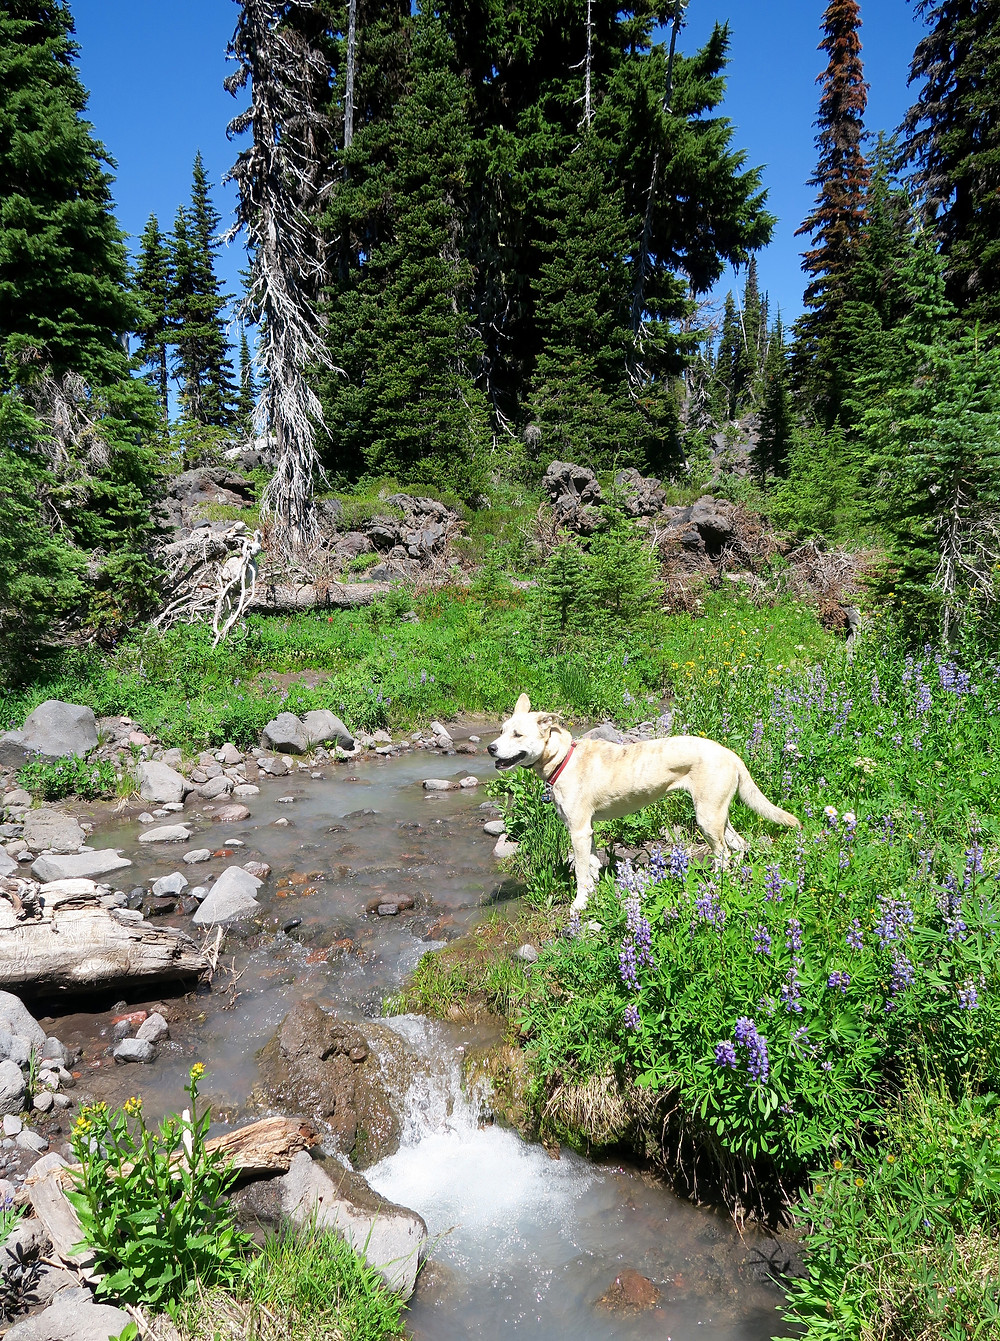 A blond dog stands in the sunshine at the edge of a light blue creek with wildflowers blooming around her and pine trees towering in the background.